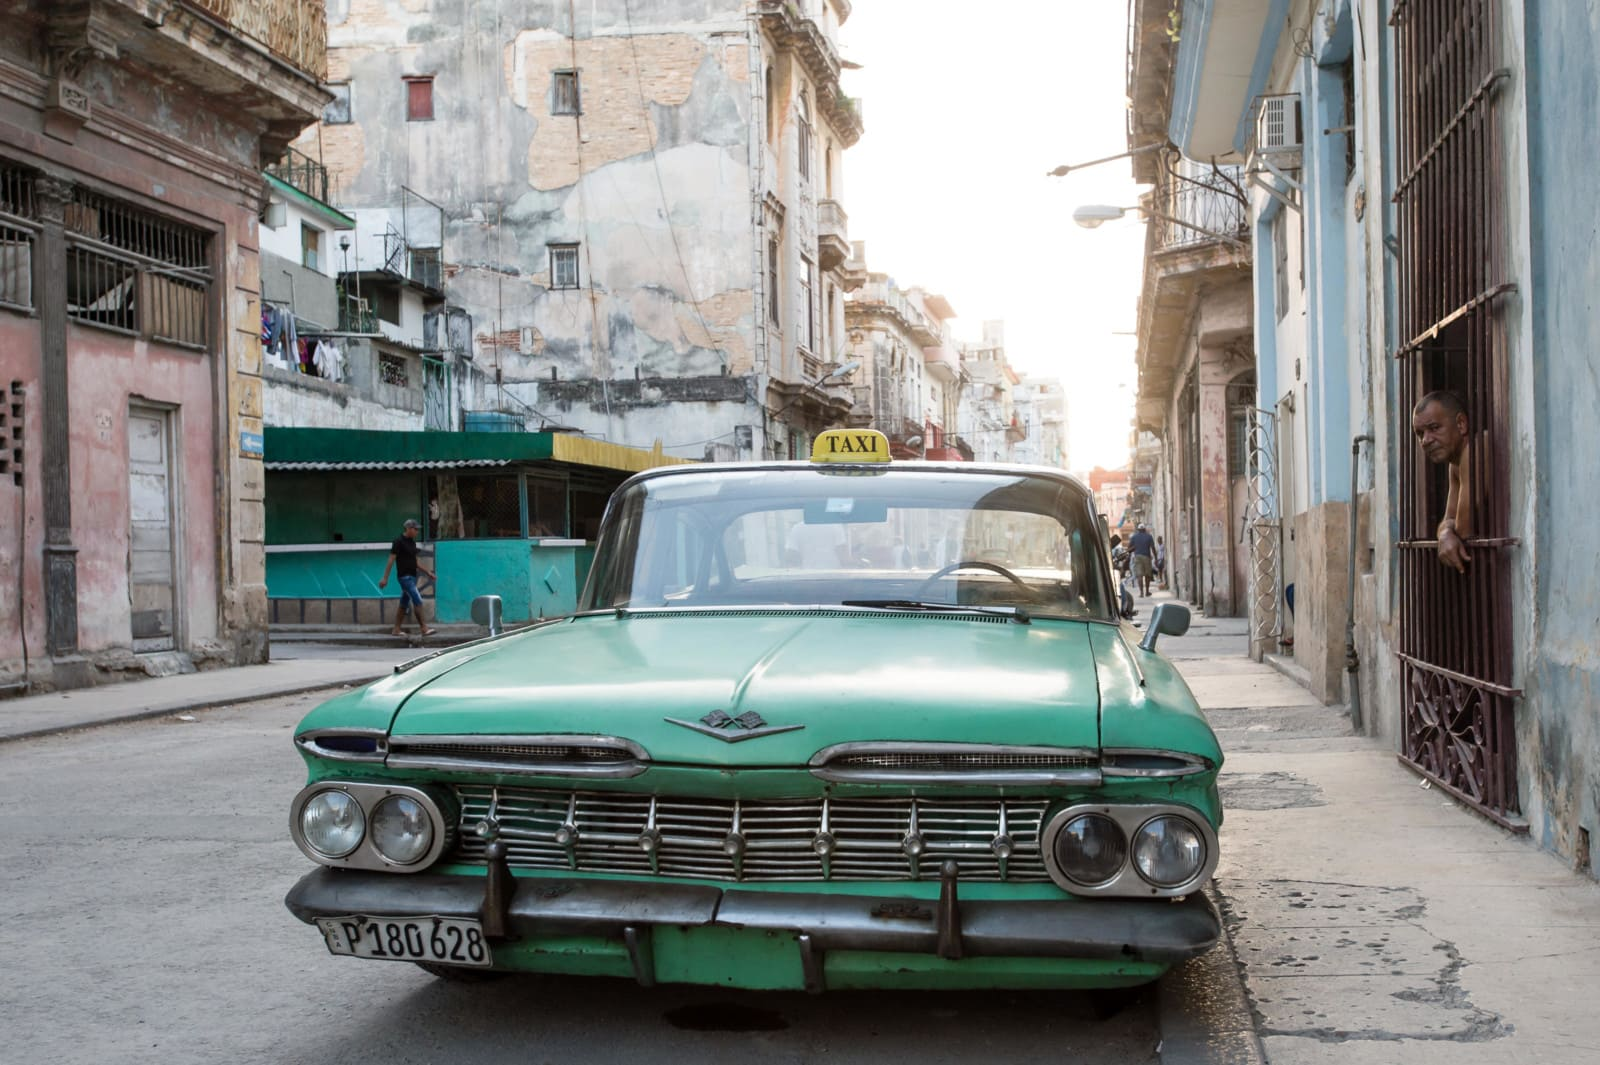 classic-car-havana-cuba-travel-london-freelance-photographer-richard-isaac-3200